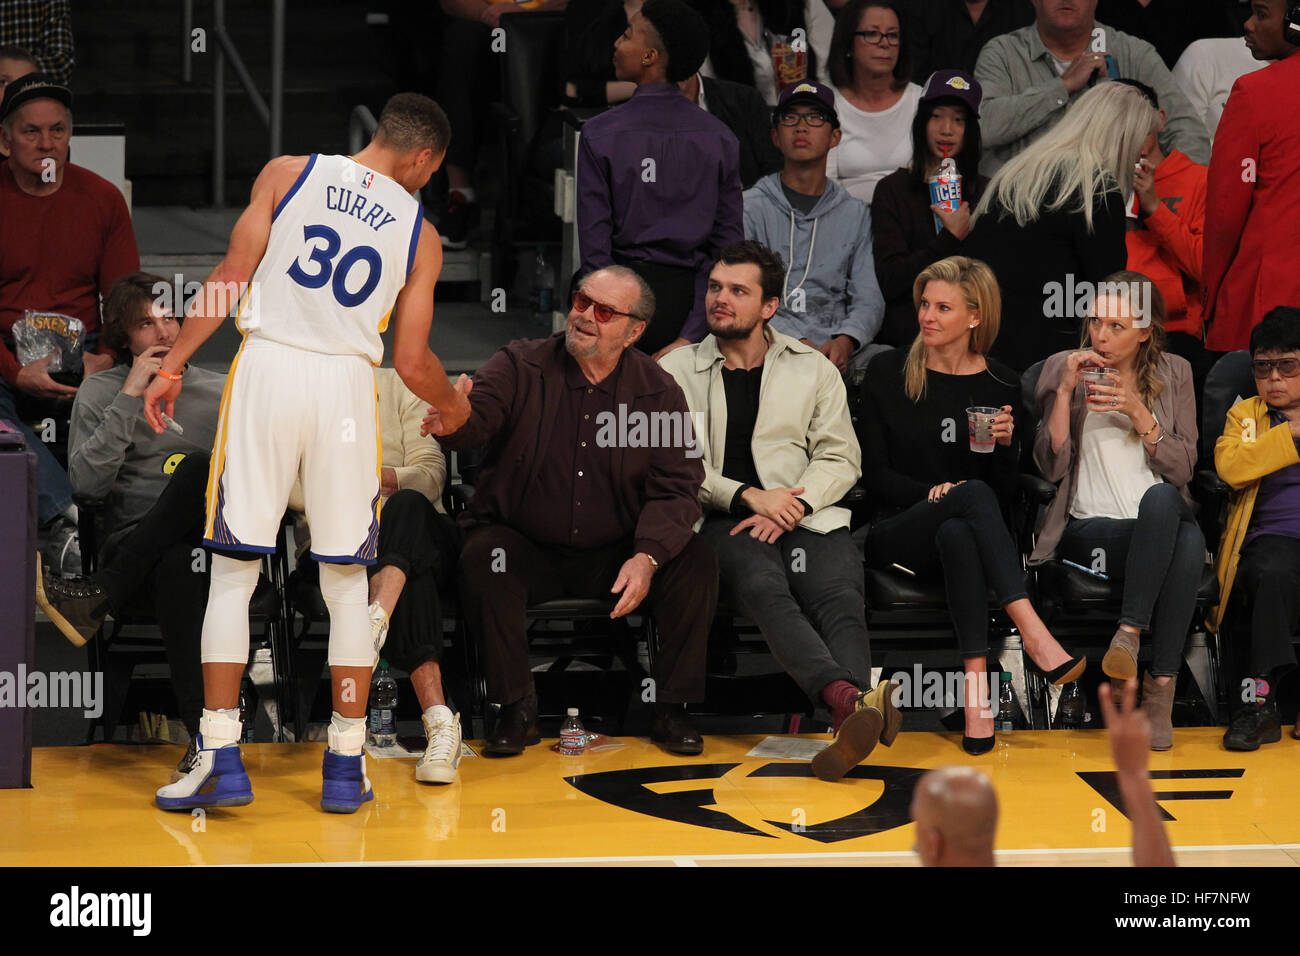 Celebrities at the Los Angeles Lakers game. The Golden State Warriors Stock Photo: 129862989 - Alamy